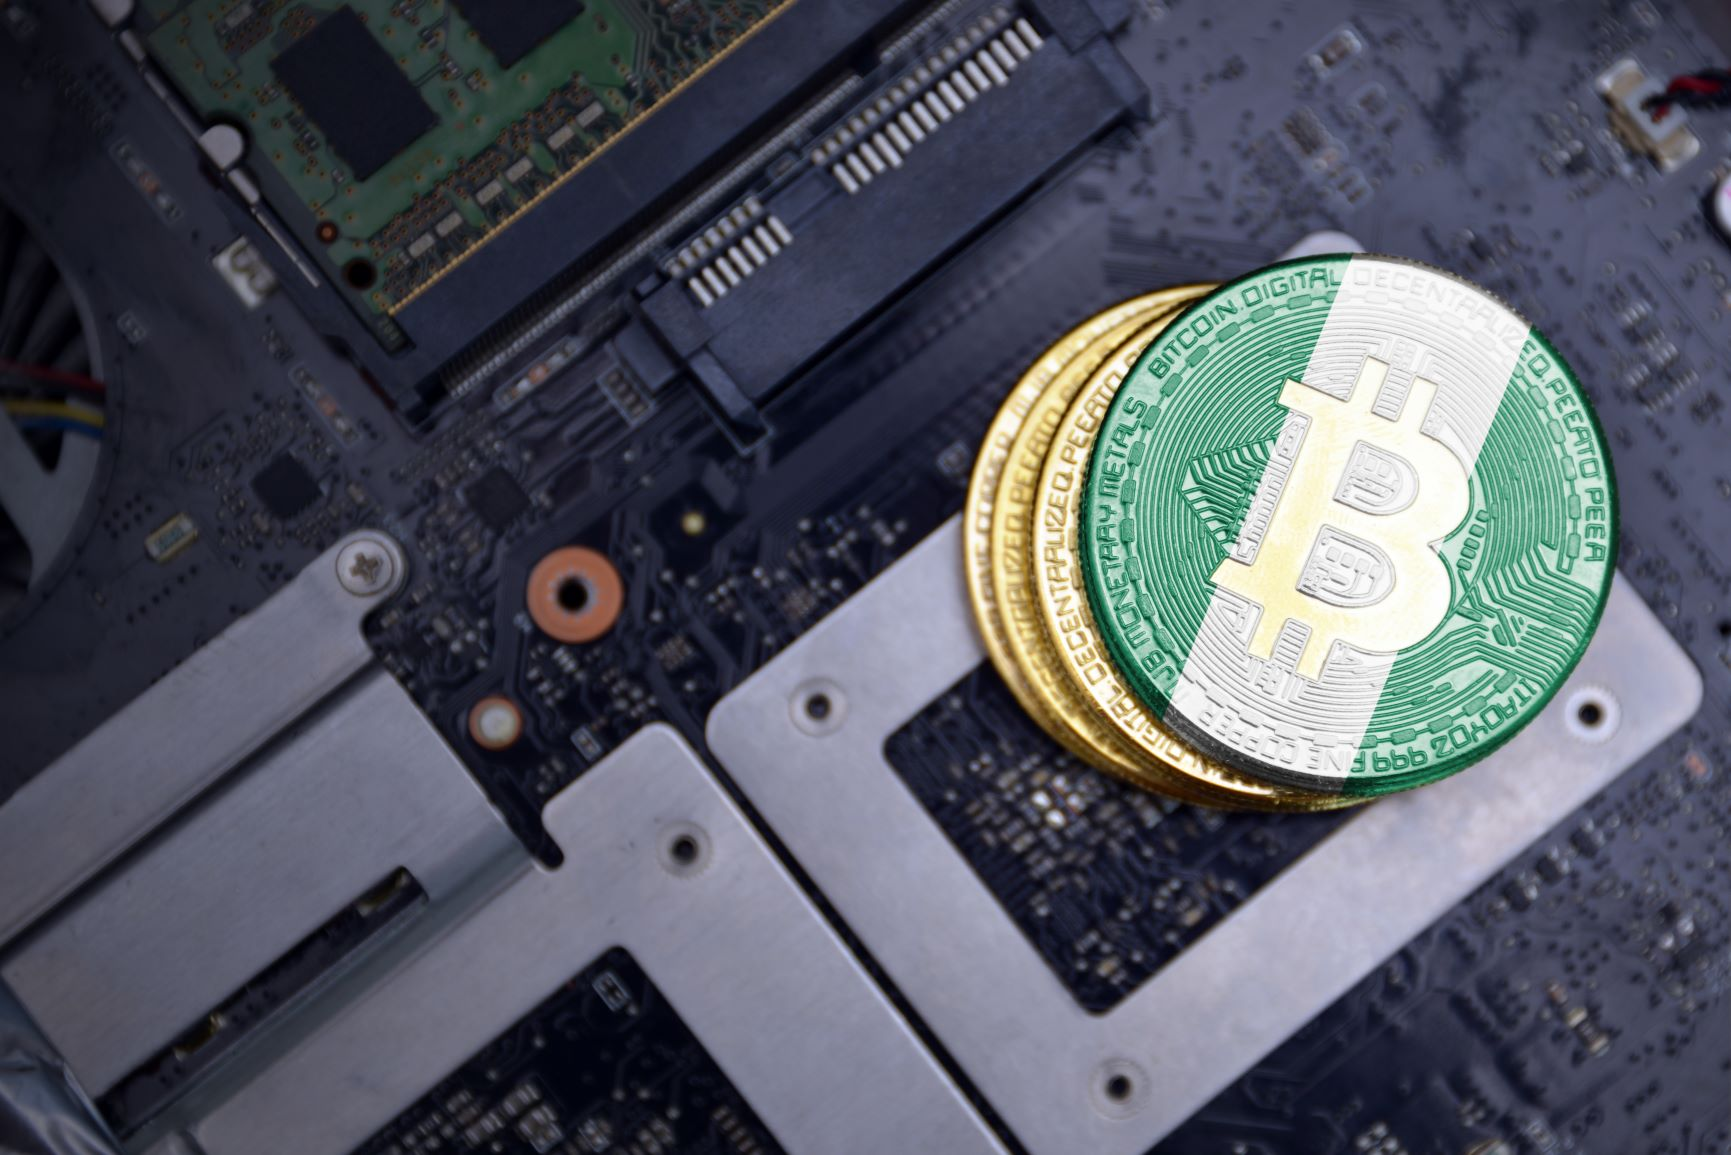 Nigeria's crypto crackdown creates more problems than it solves